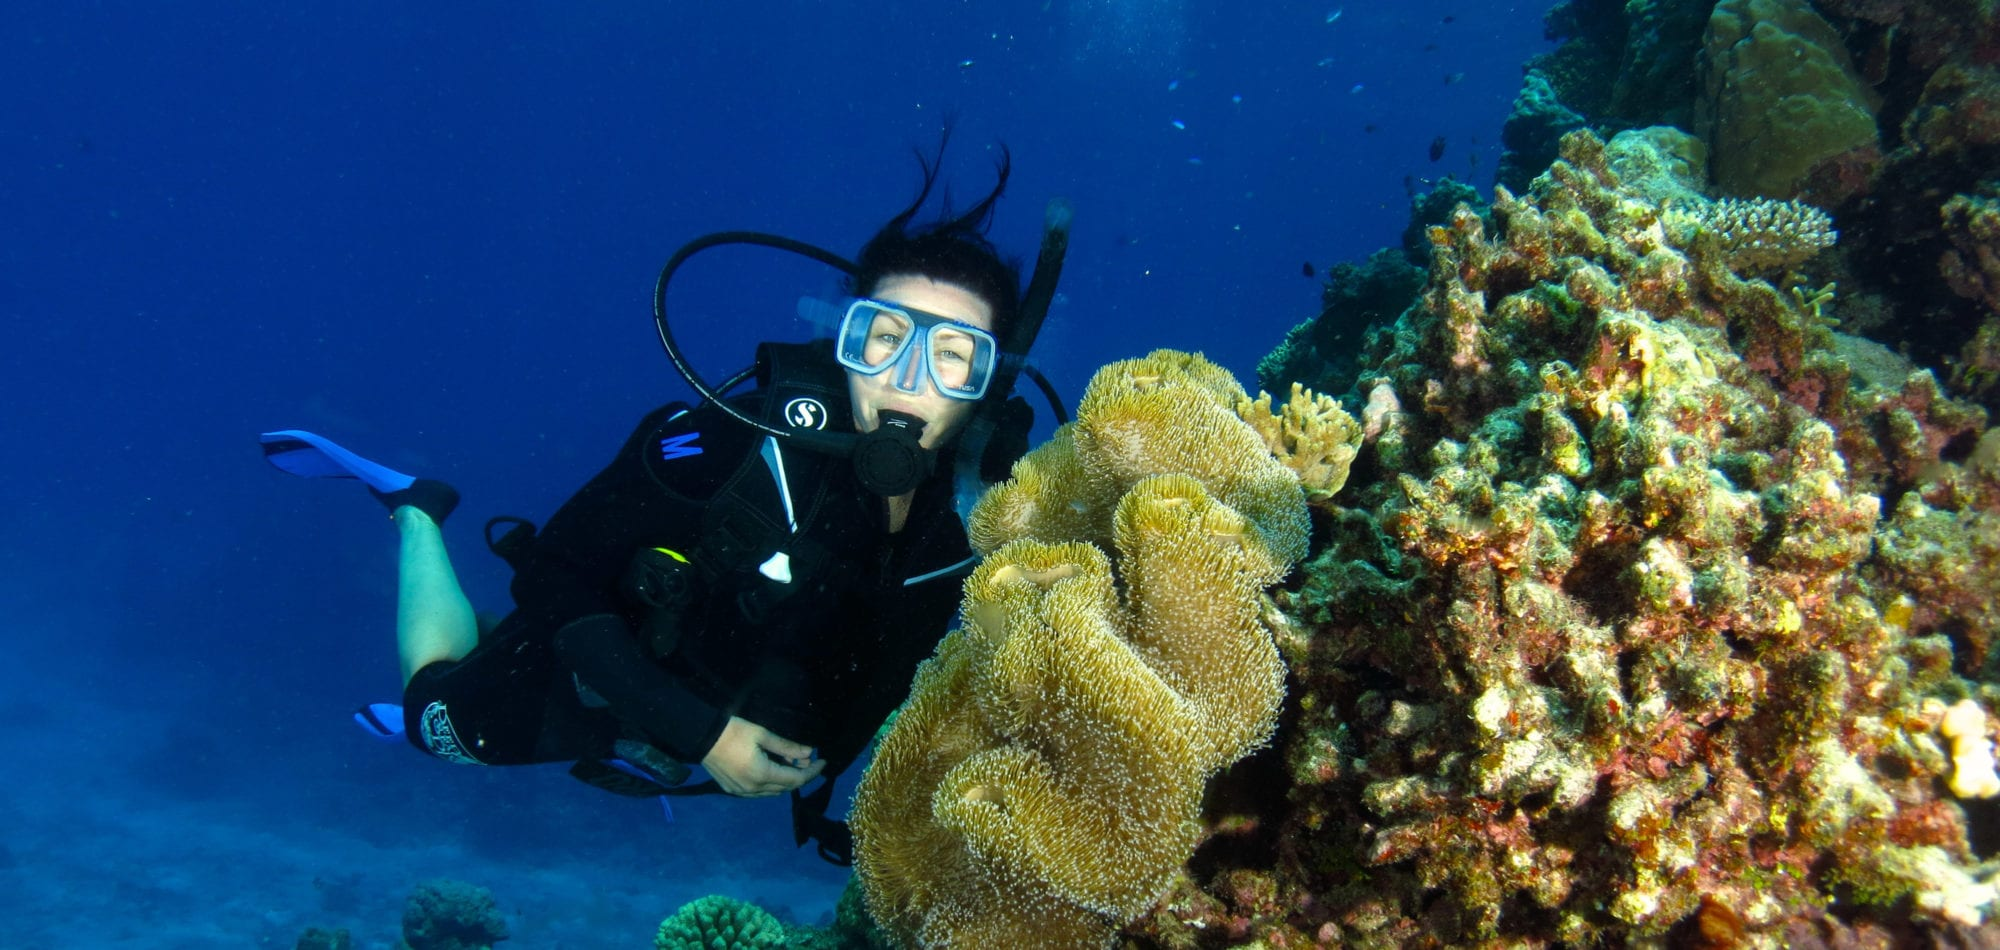 Cairns liveaboard scuba diving - diver enjoying dive holiday in Queensland